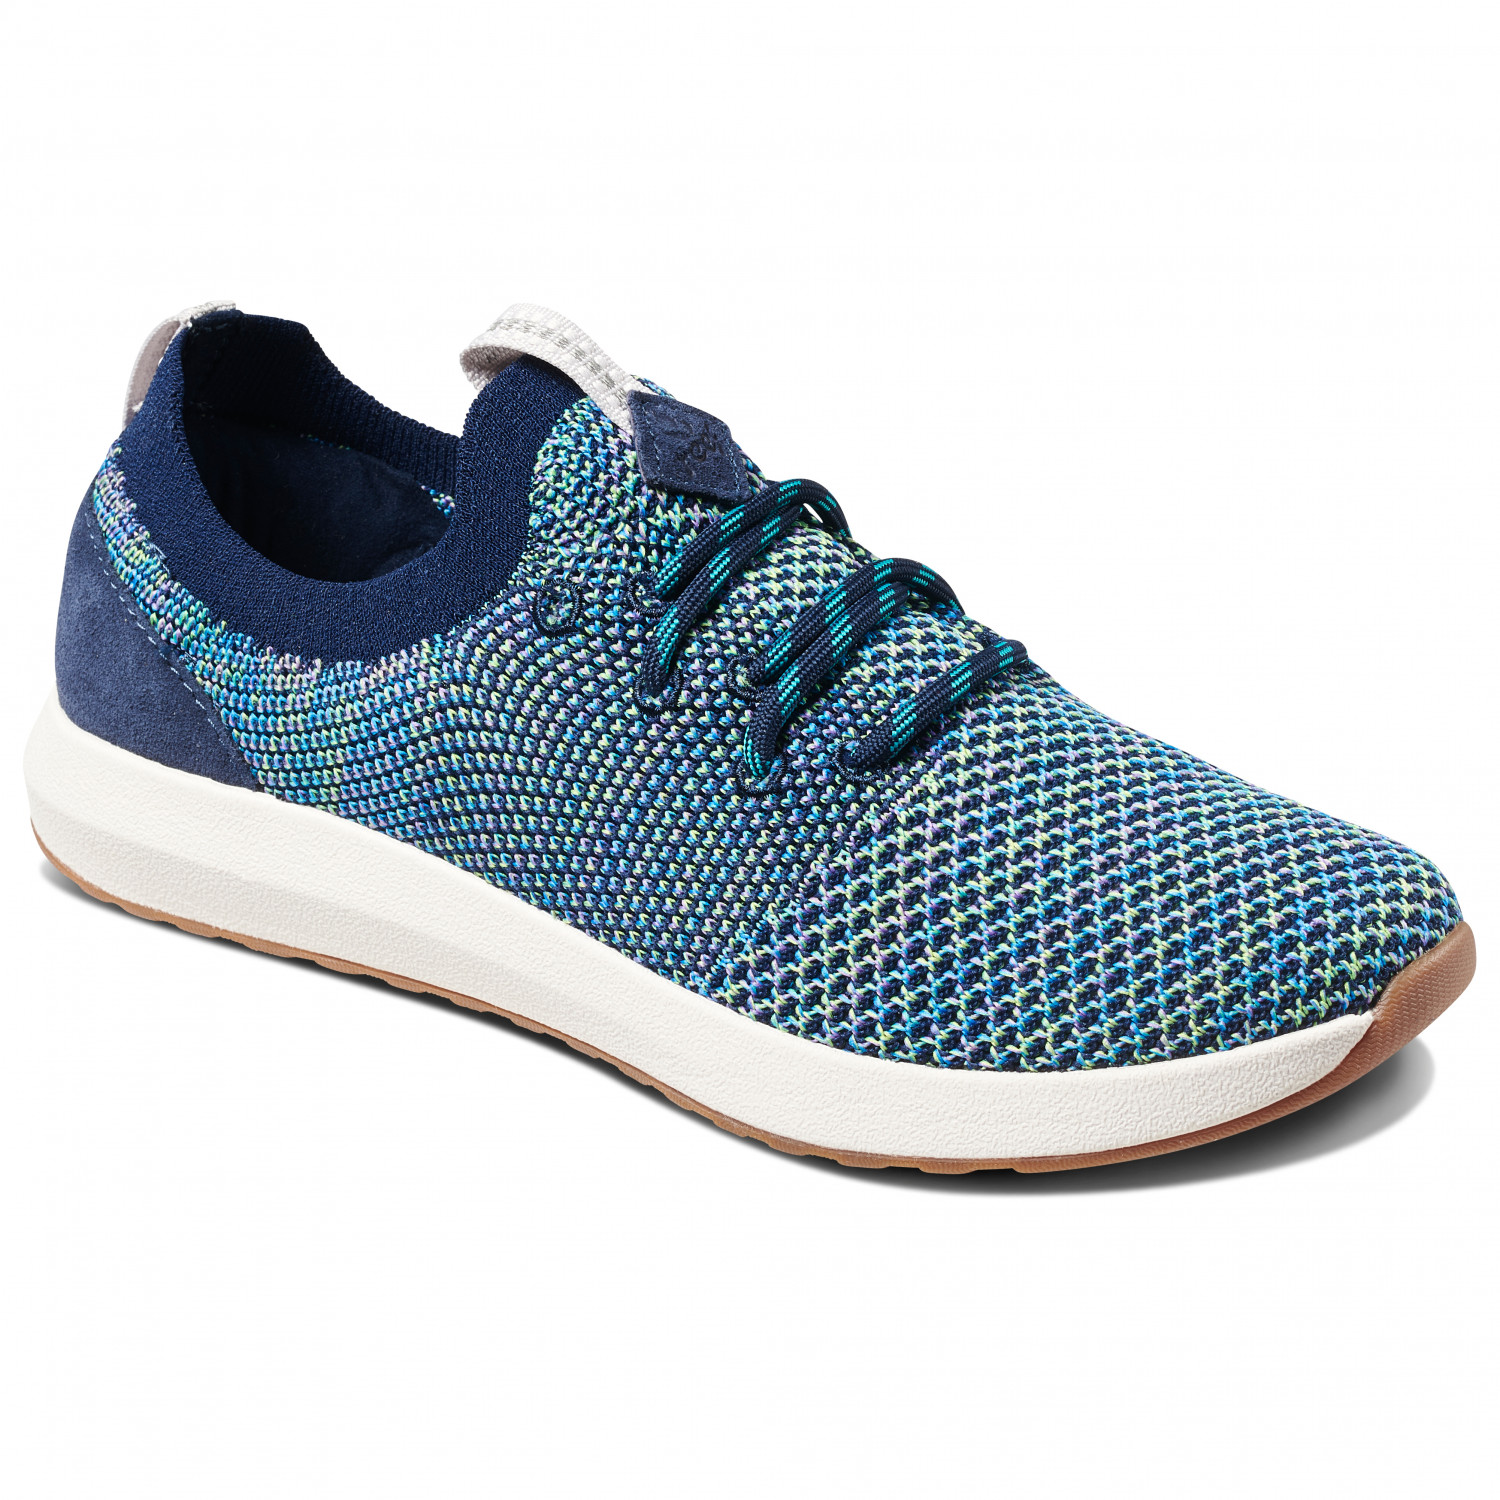 Reef Women's Cruiser Knit Sneakers Black White | 7,5 (US)